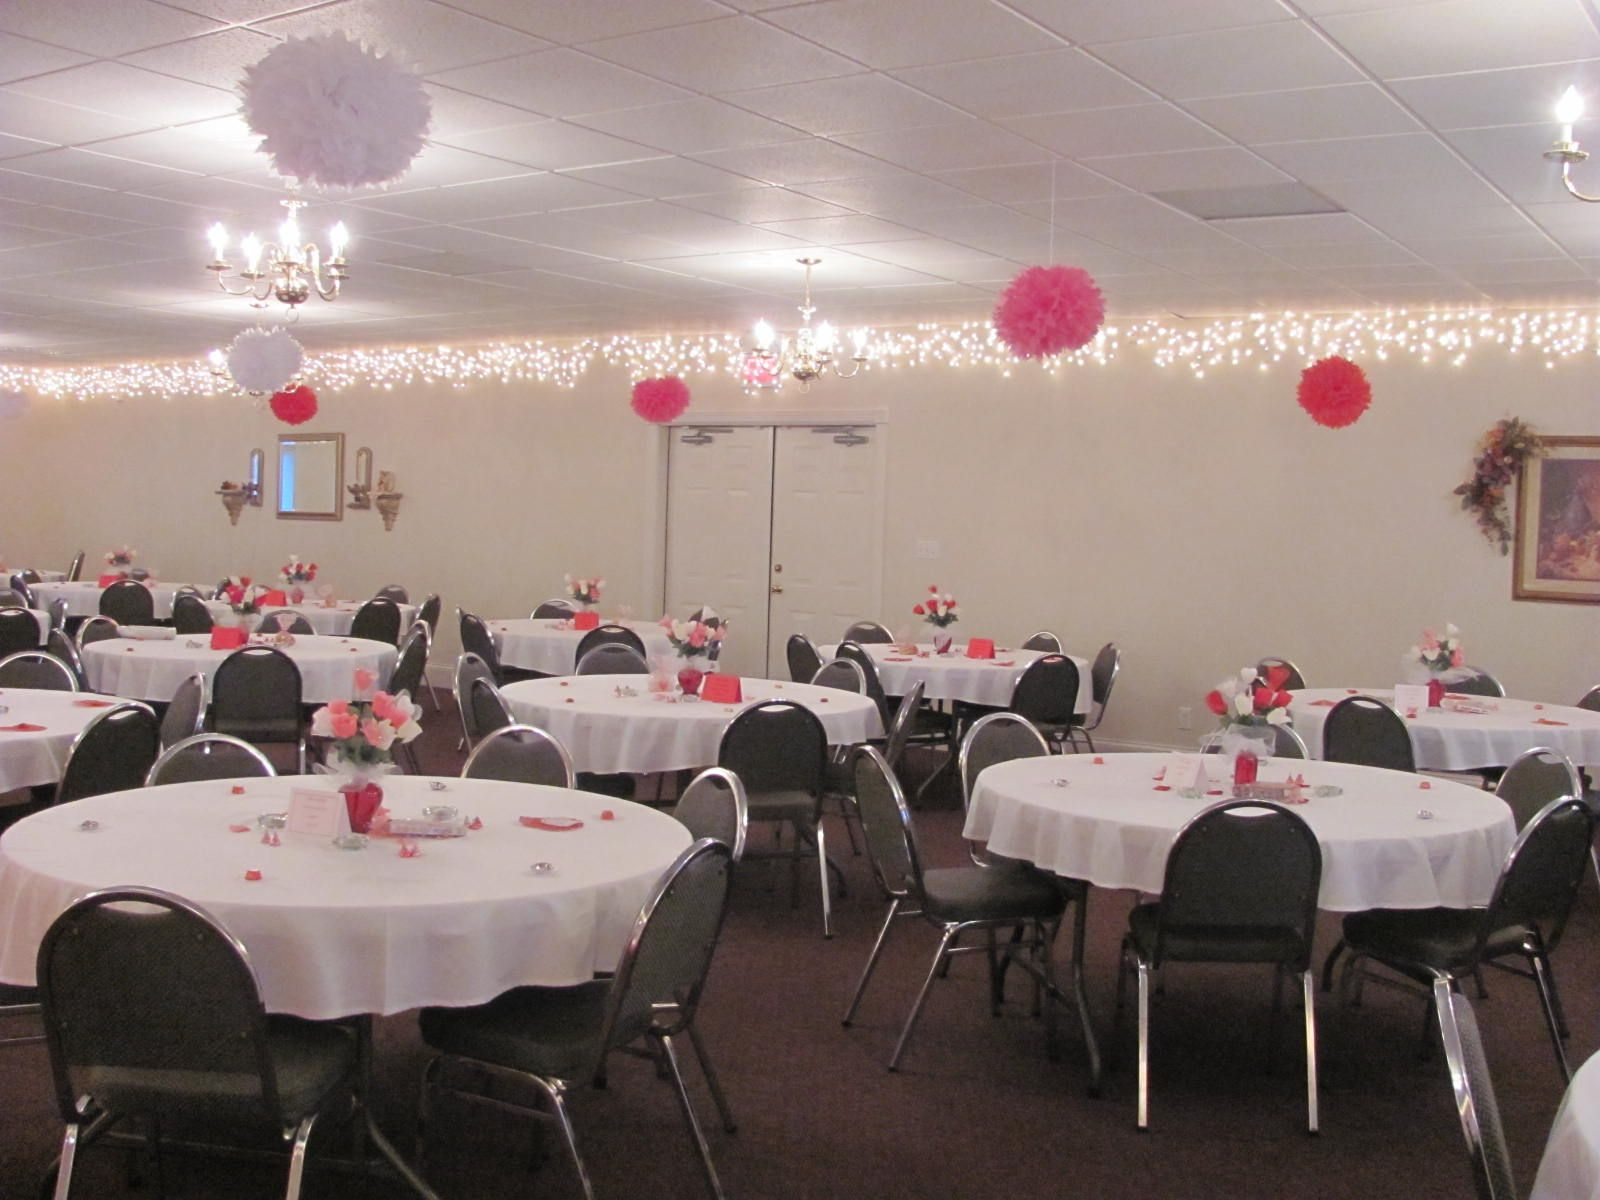 Valentine party ideas for church - Pom Poms I Used At A Valentines Banquet Church Decorationsbanquet Ideasvalentine Party50th